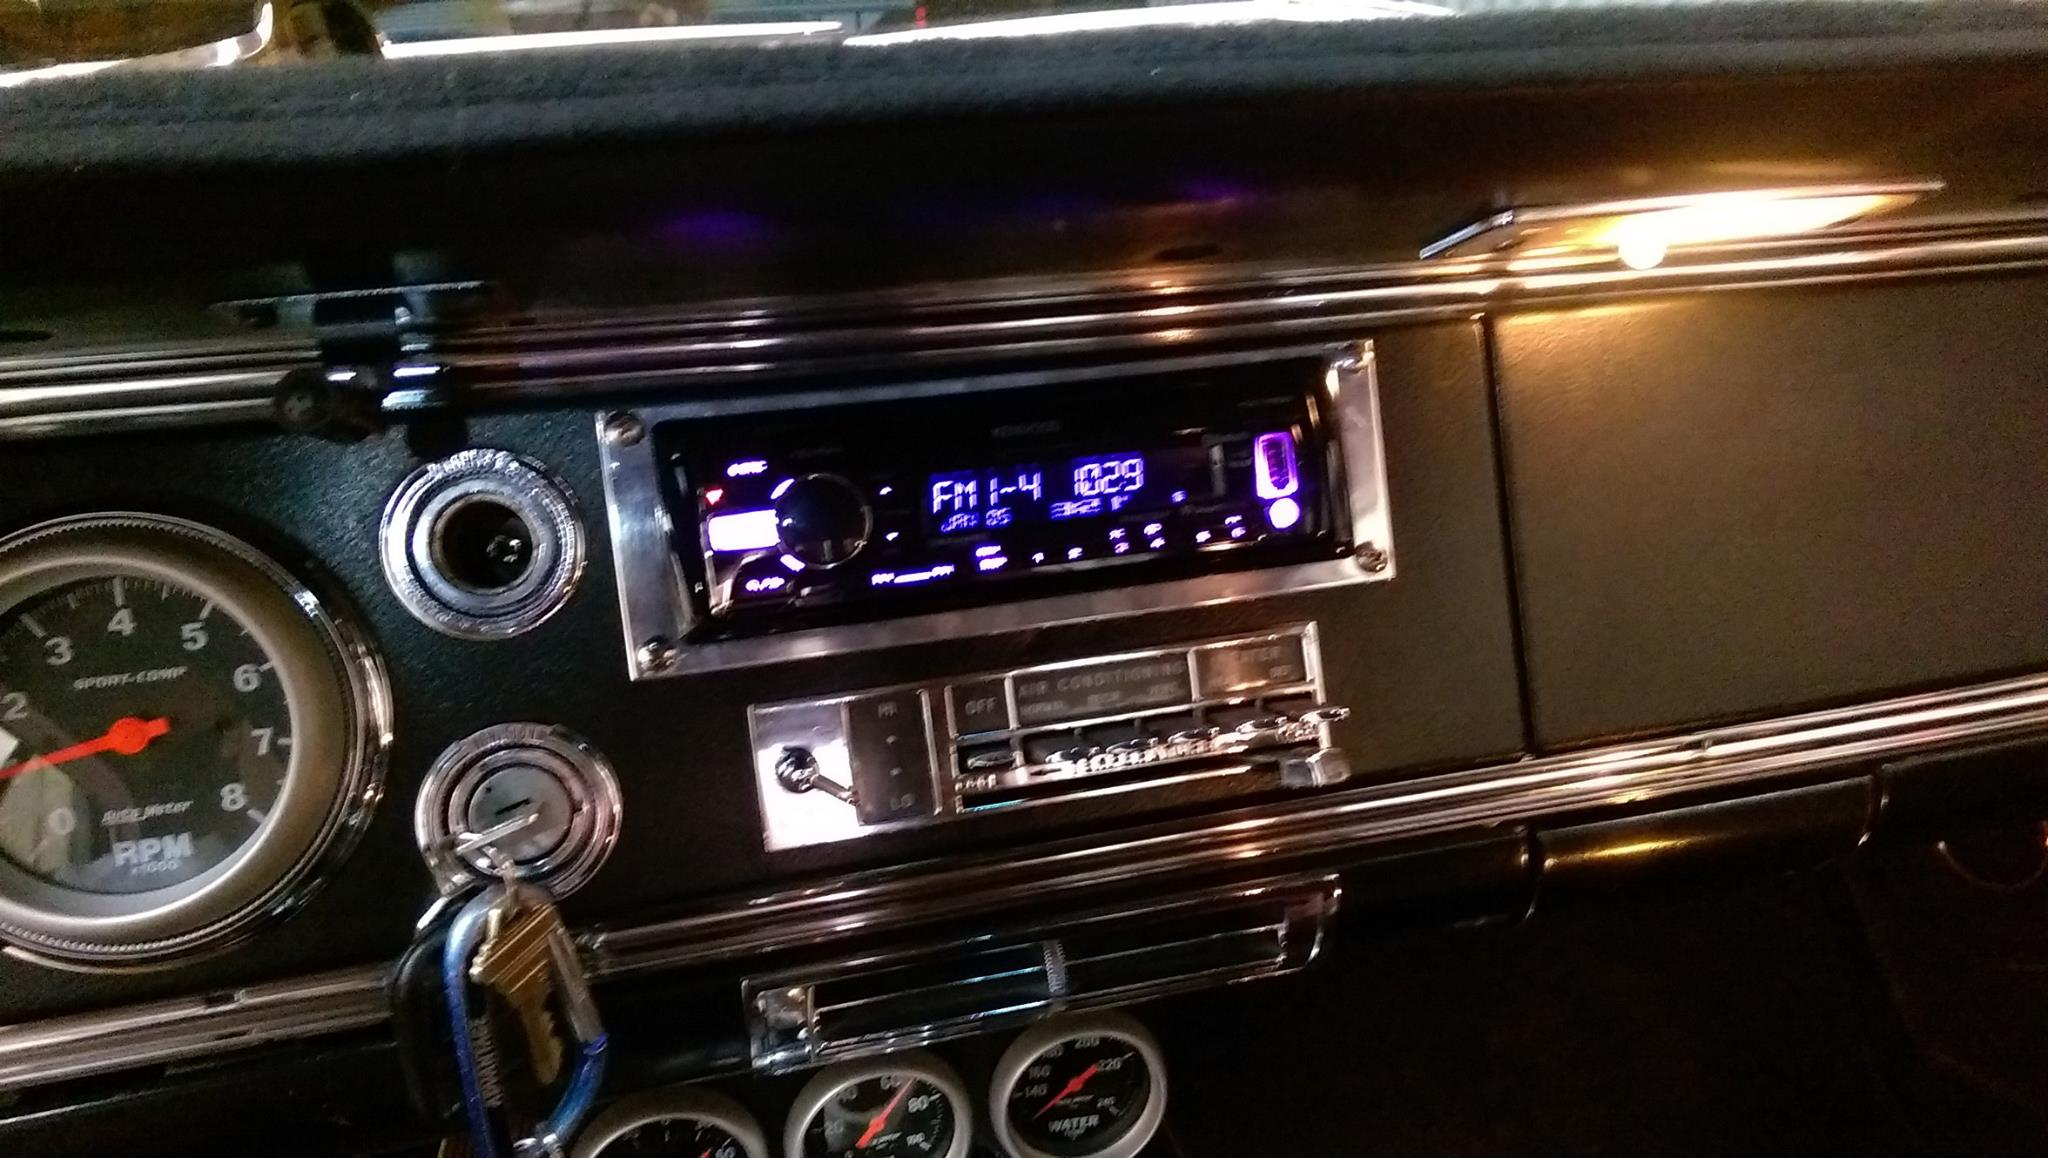 What a cool Car to work on! 1965 Oldsmobile Starfire. A rare car indeed. This thing is Cherry!. Kenwood Excelon KDCX301 Bluetooth Headunit, Infinity Reference 6.5 Components in the kicks with matching 6x9